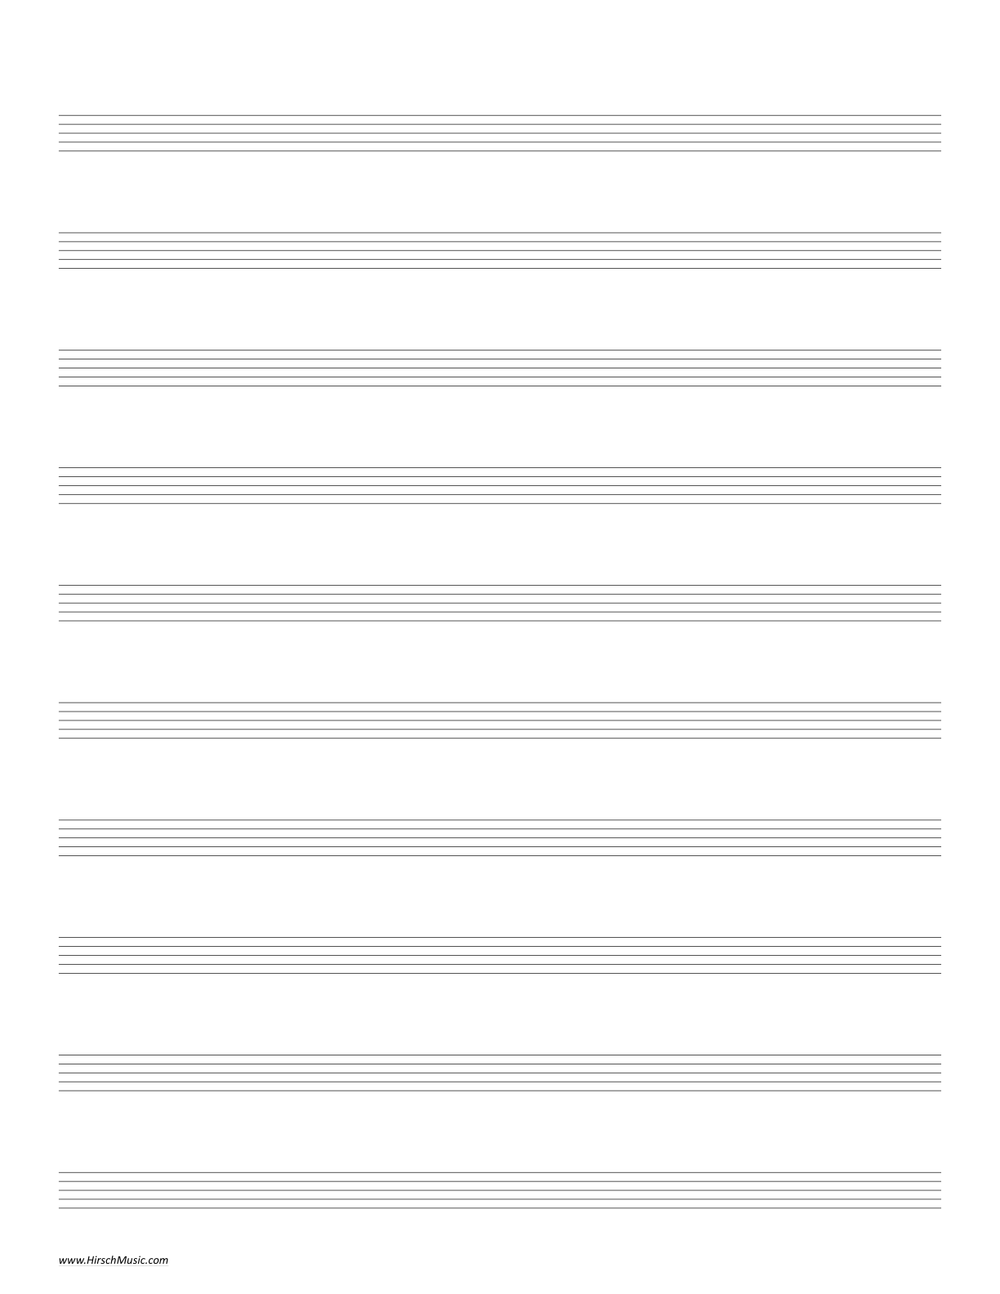 It's just a graphic of Eloquent Printable Staff Paper With Bar Lines